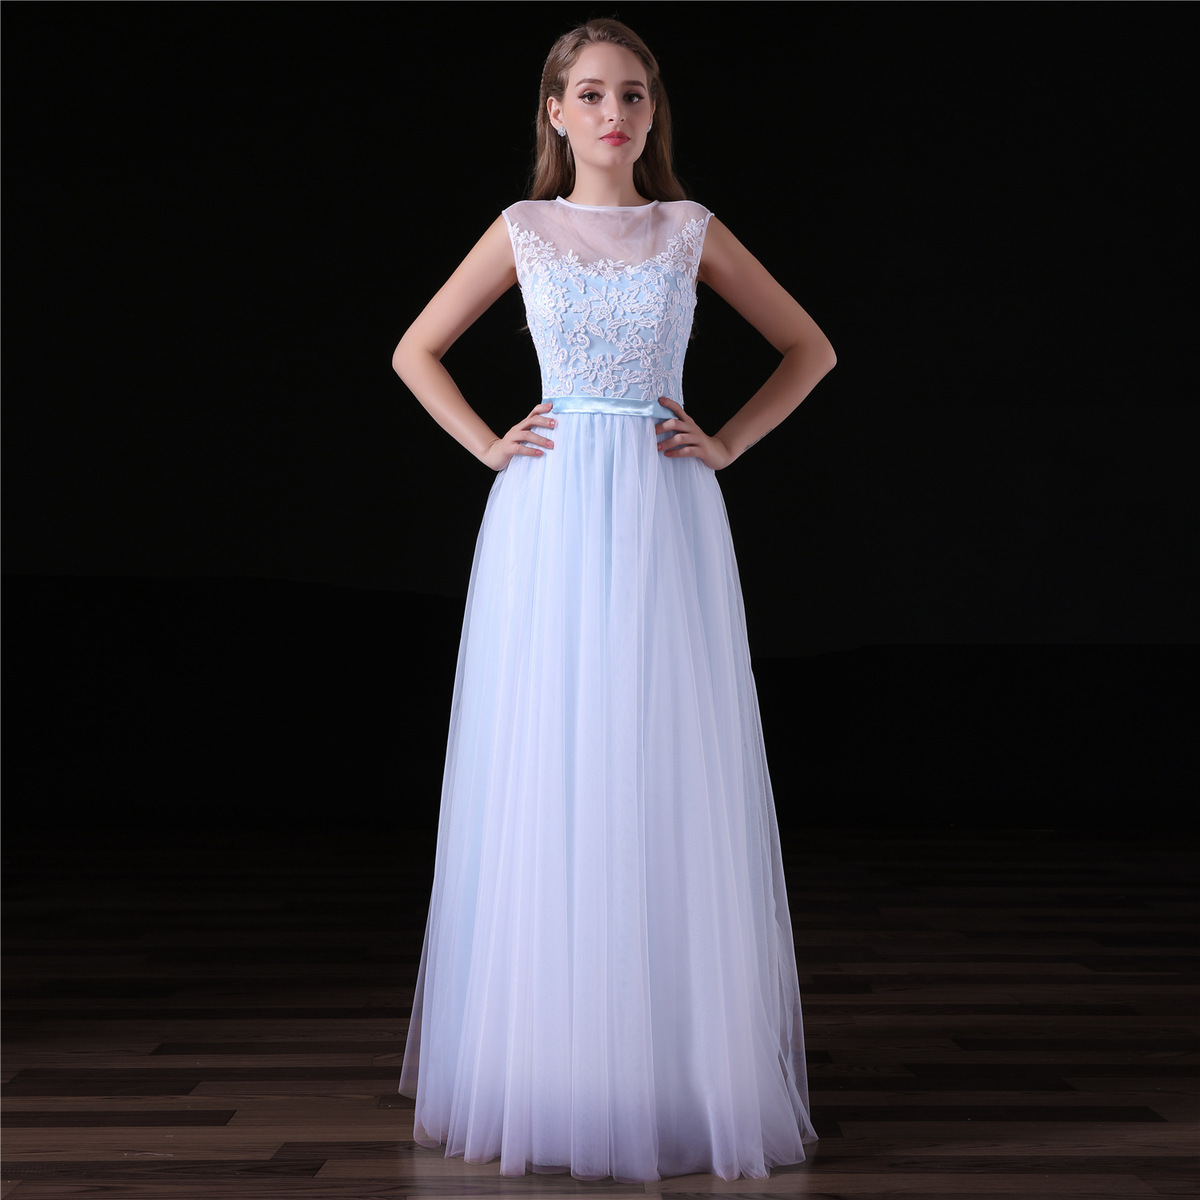 2018 New Simple Long Bridemsaid Dress Lace Top Tulle Skirt